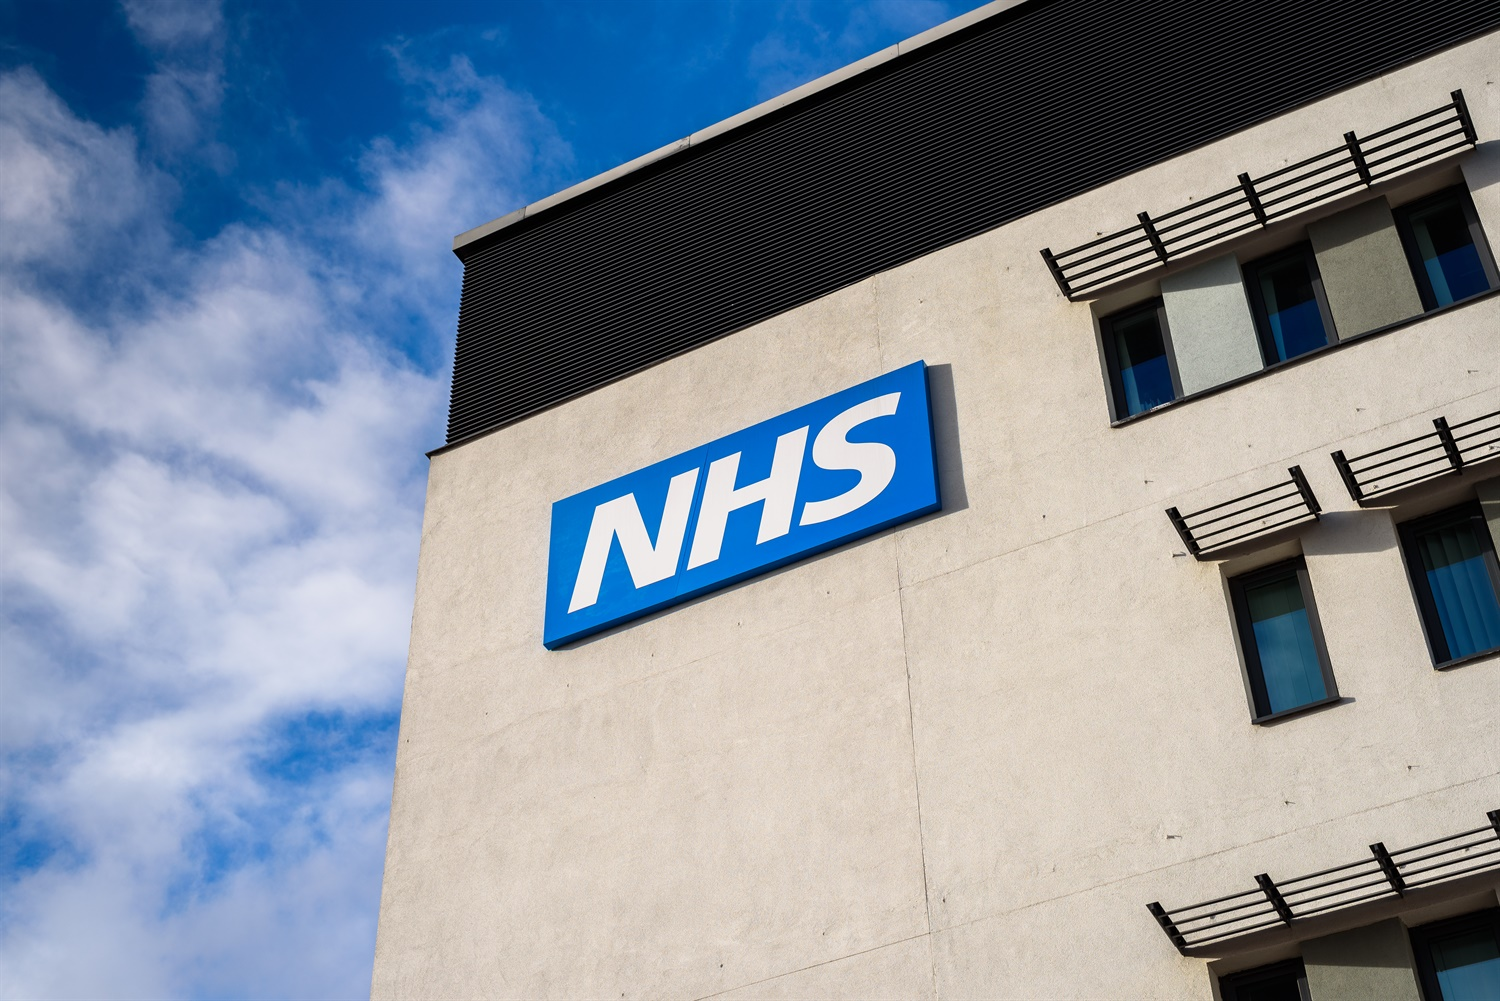 Capital Investment in NHS Being Slashed to Cover Rising Day-to-day Costs, Report Reveals